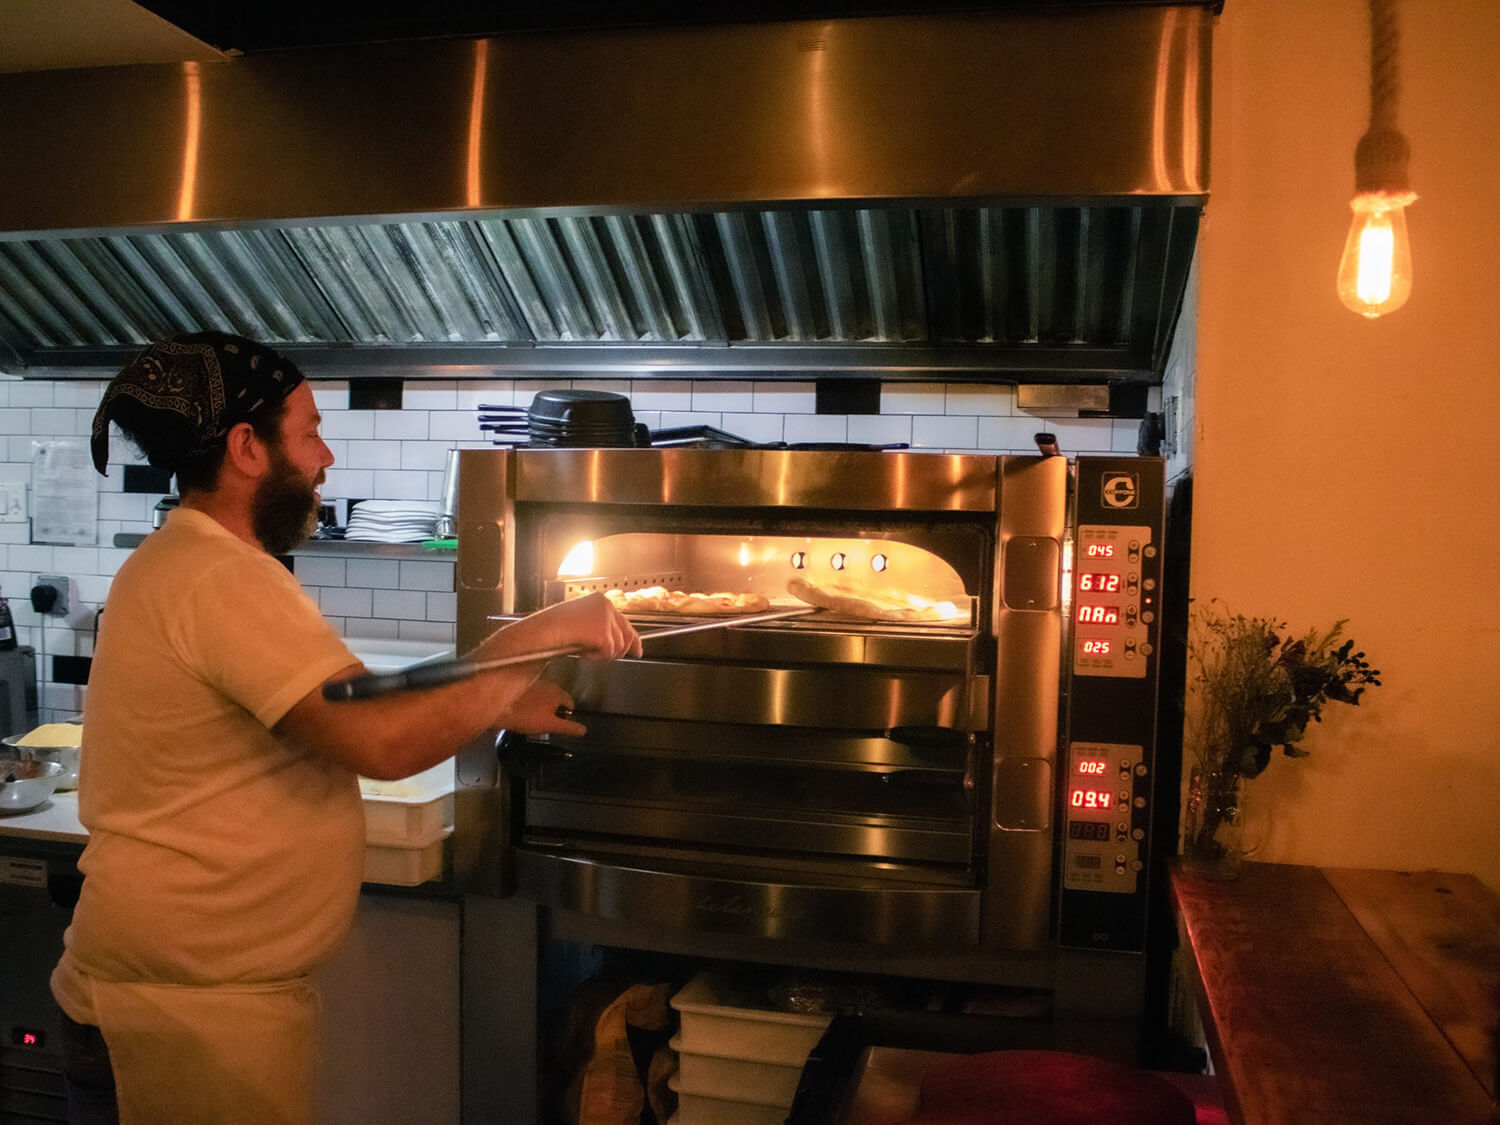 A man expertly working pizzas into a stainless steel pizza oven in a restaurant kitchen.